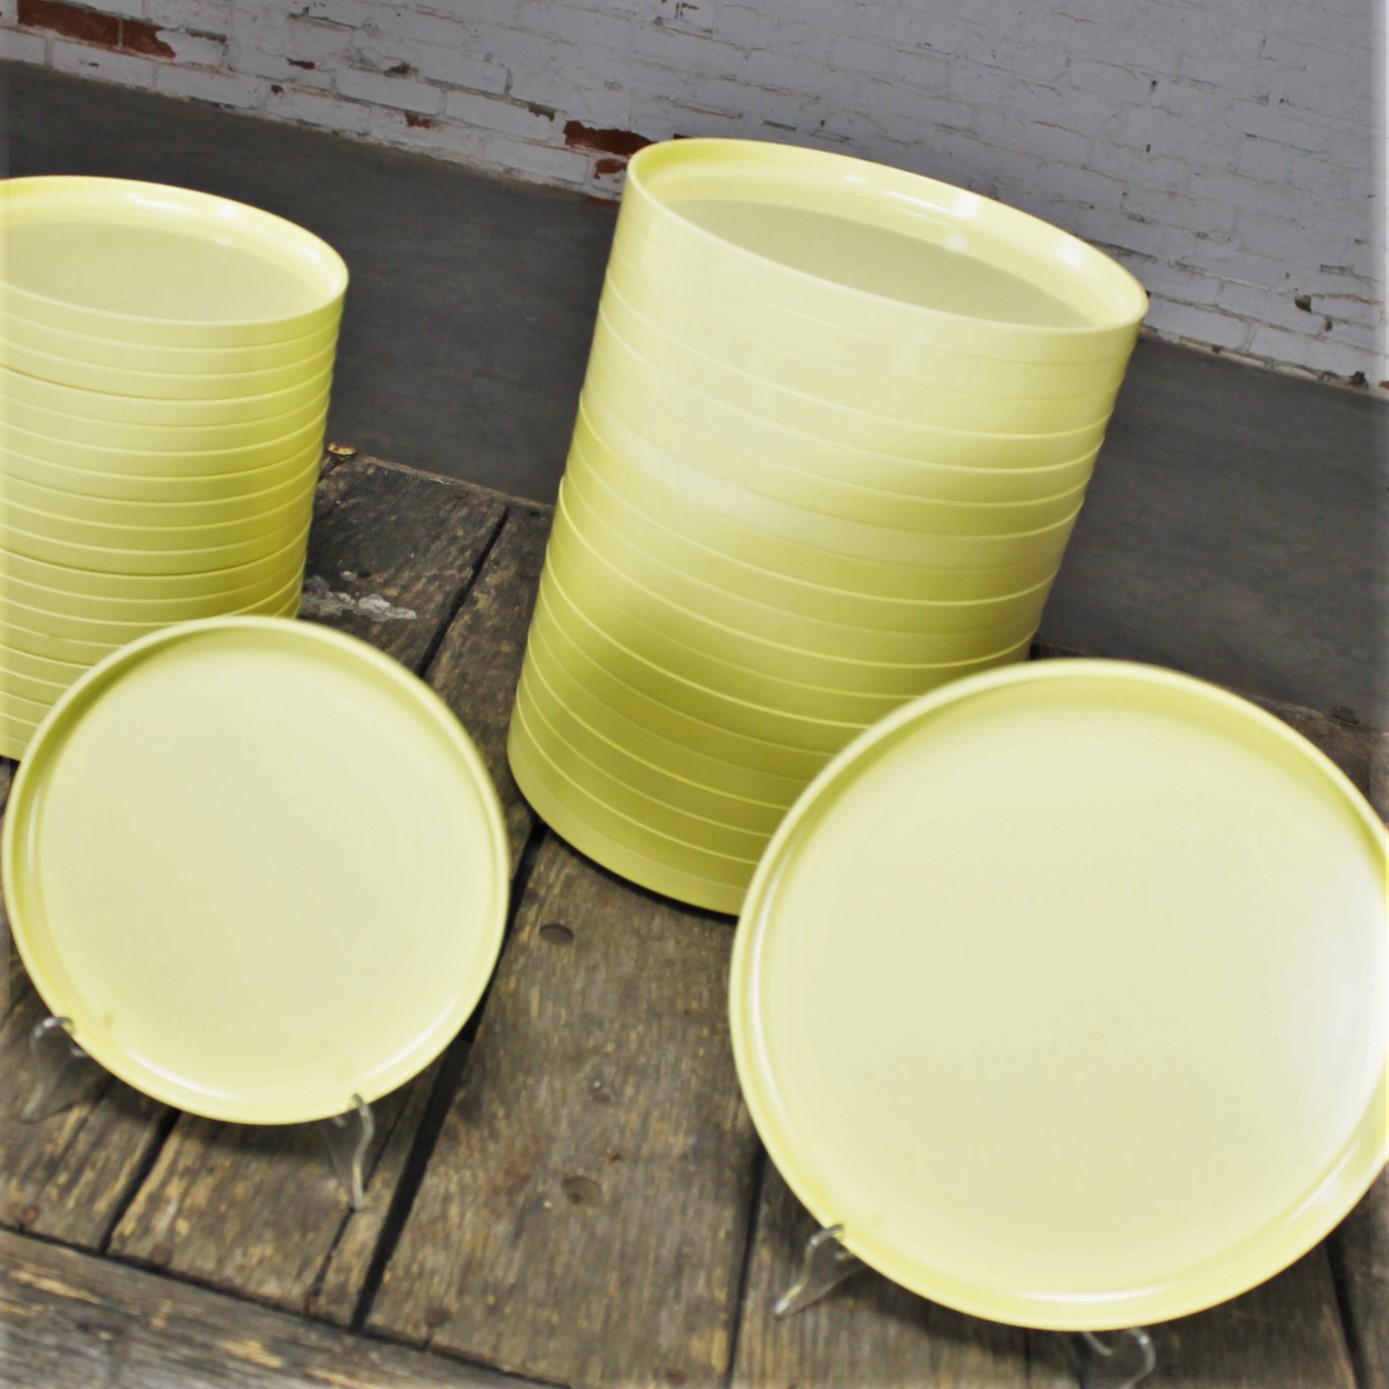 Massimo Vignelli for Heller Dinnerware 20 Large Plates and 20 Small Plates Light Yellow & Massimo Vignelli for Heller Dinnerware 20 Large Plates and 20 Small ...